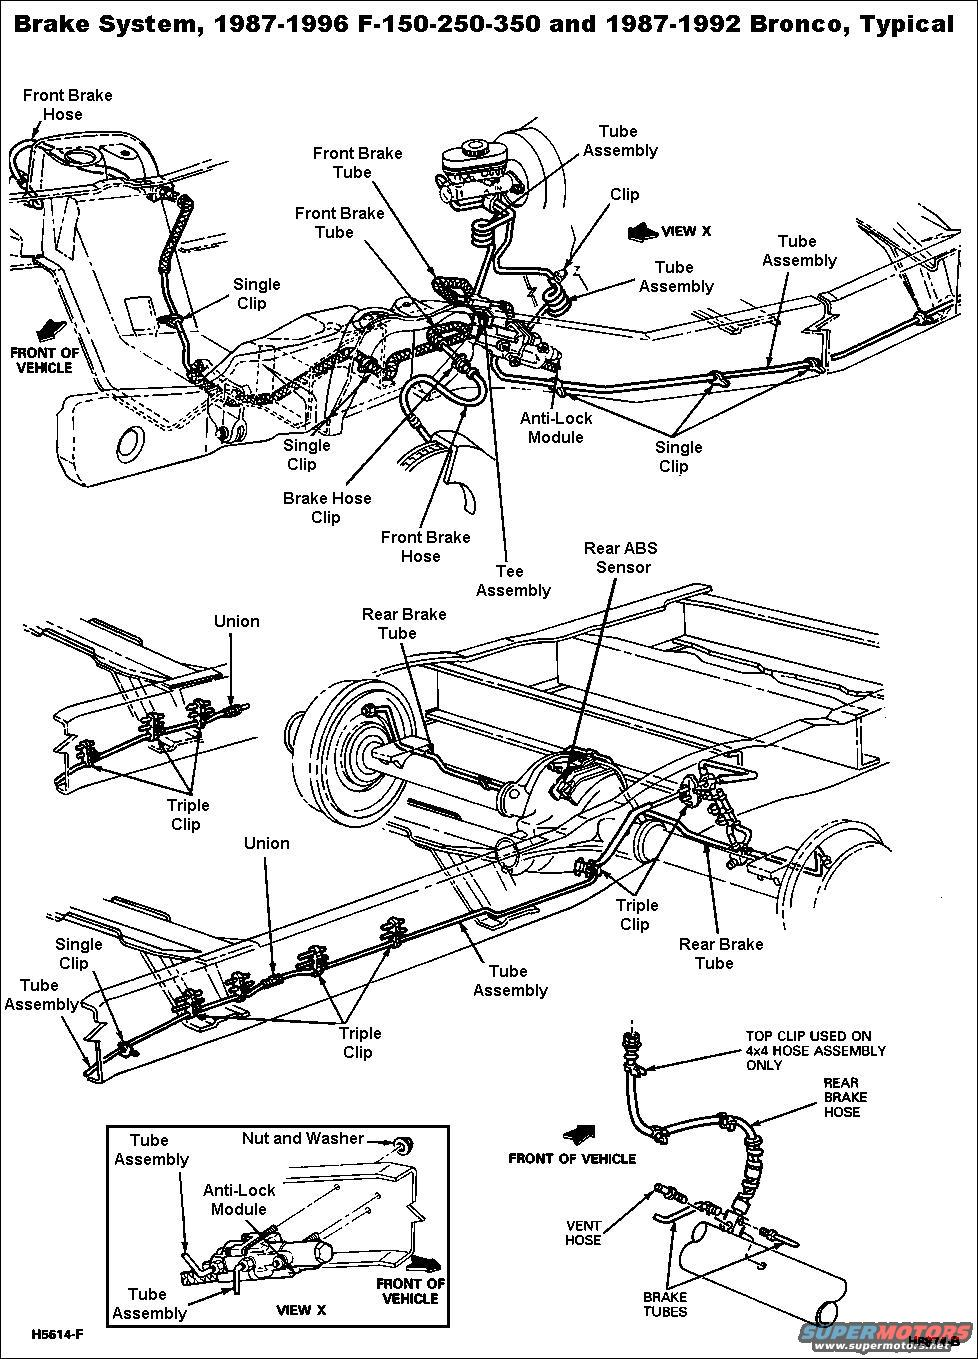 Dodge Dakota Transmission Filter Location furthermore 280799 1 additionally 1998 Dodge Ram Radio Wiring Diagram Image Details likewise 2002 P0440 Vacuum Leak From Throttle Body 493112 together with Brake Booster Master Cylinder Info 1988 A 230003. on 1995 jeep cherokee abs